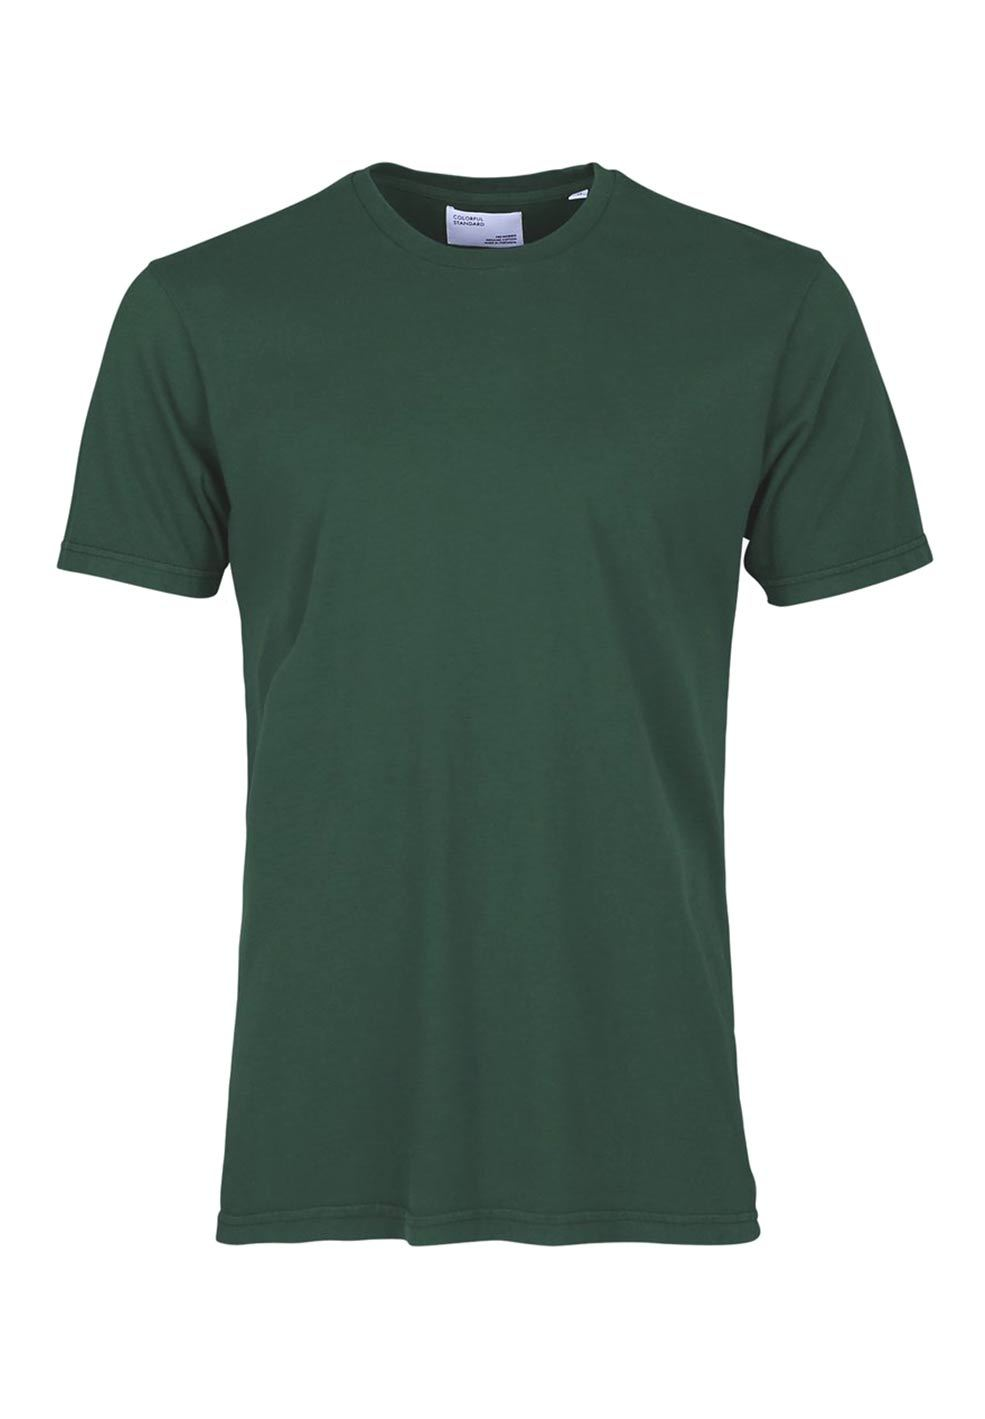 Colorful Standard COLORFUL STANDARD classic organic cotton tee shirt round neck emerald green (unisex)